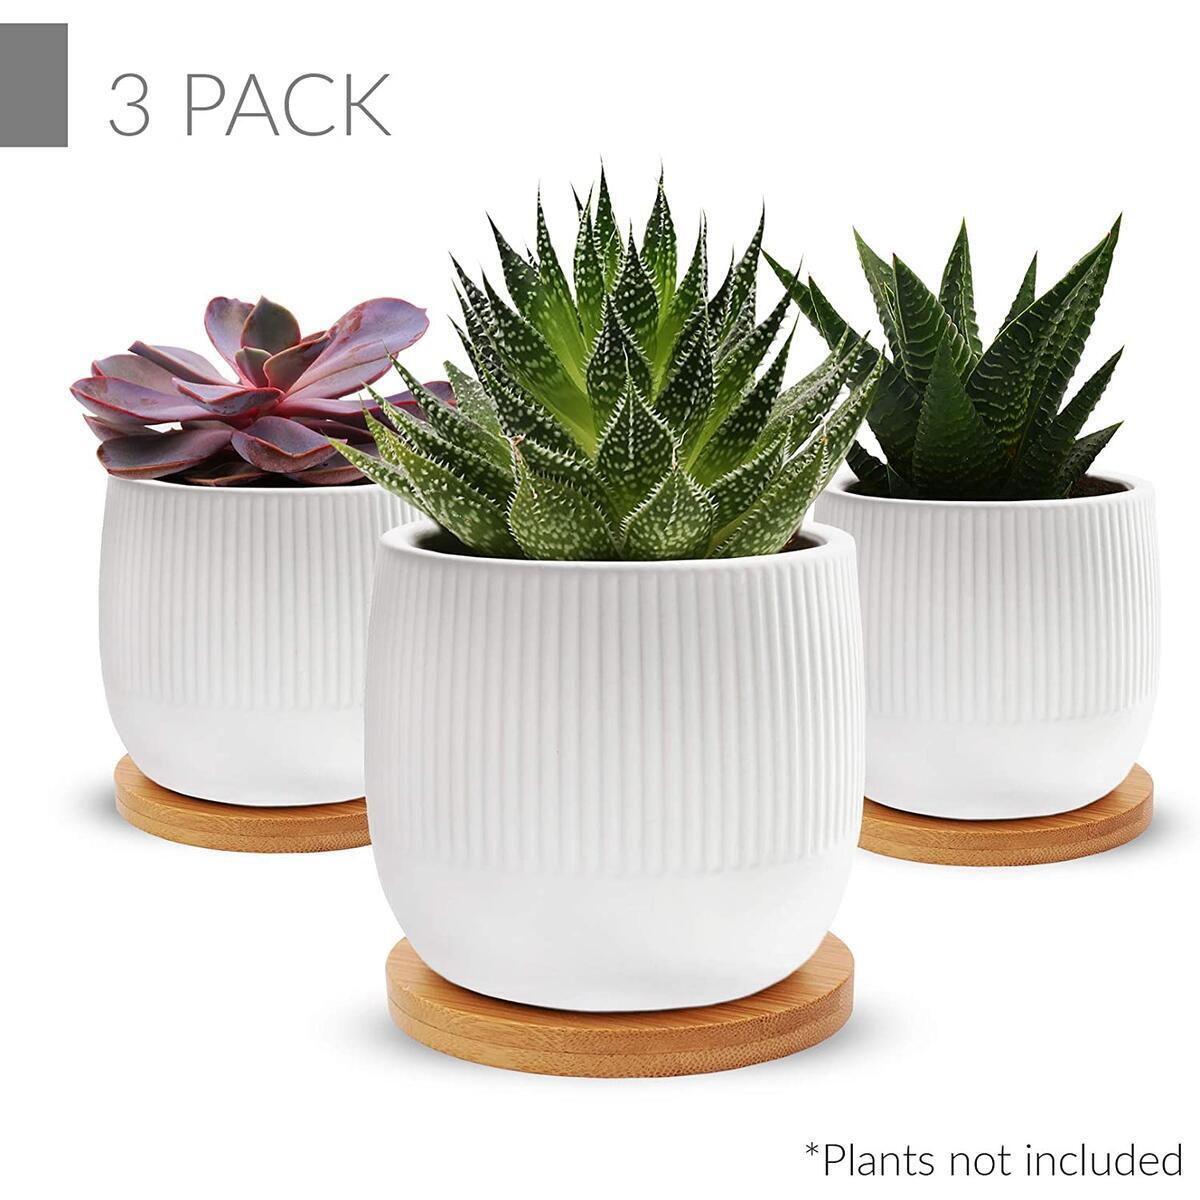 Succulent Planter Pots 2.75 inch | Ribbed Pattern| Set of 3| Ceramic Matt Stoneware| White Mini Cactus pots with Drainage Trays| for Home or Office Decor| Plants not Included.